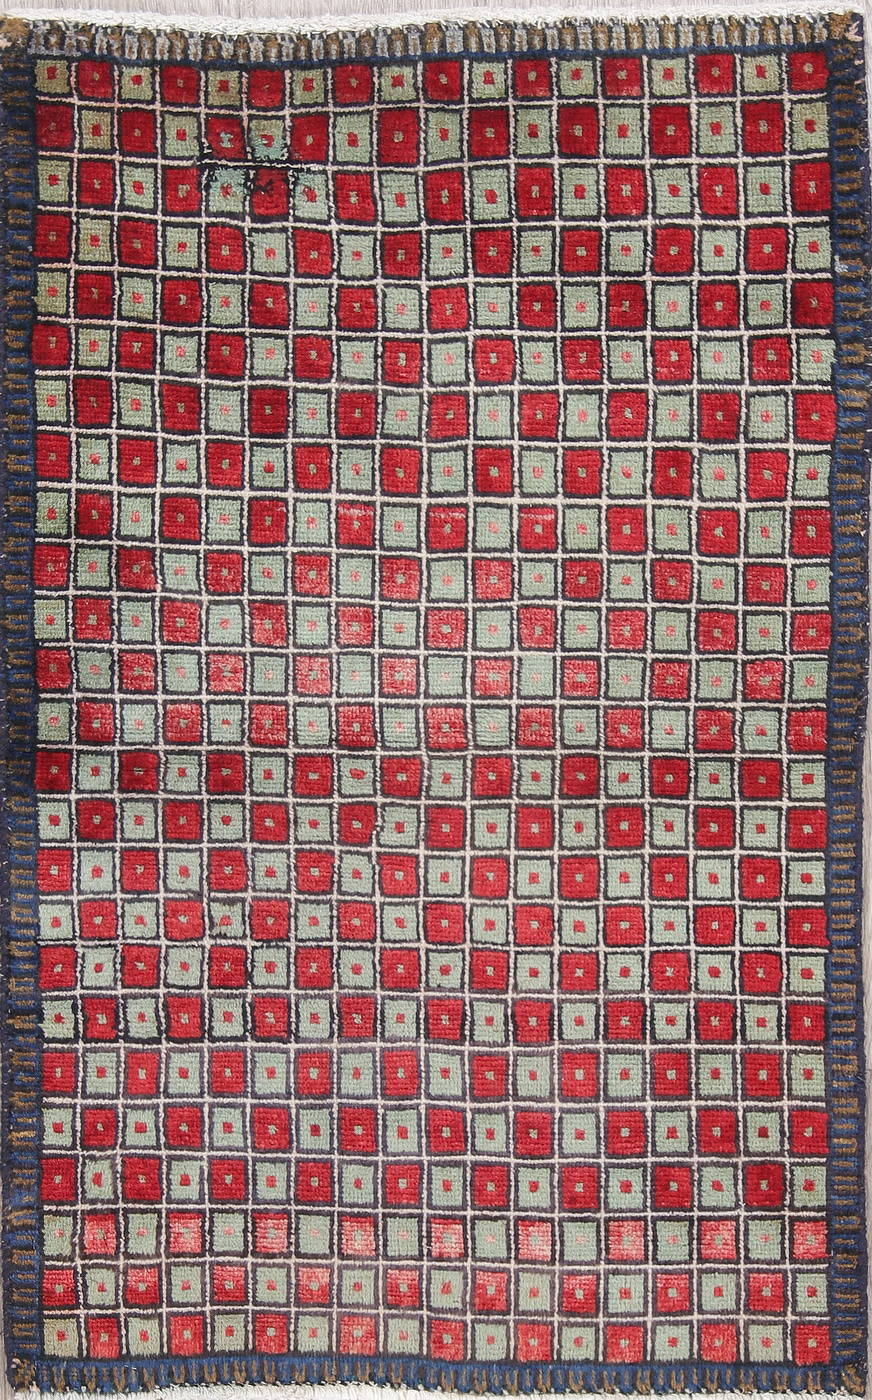 Checked Geometric Gabbeh Persian Hand-Knotted 2x4 Wool Rug image 11